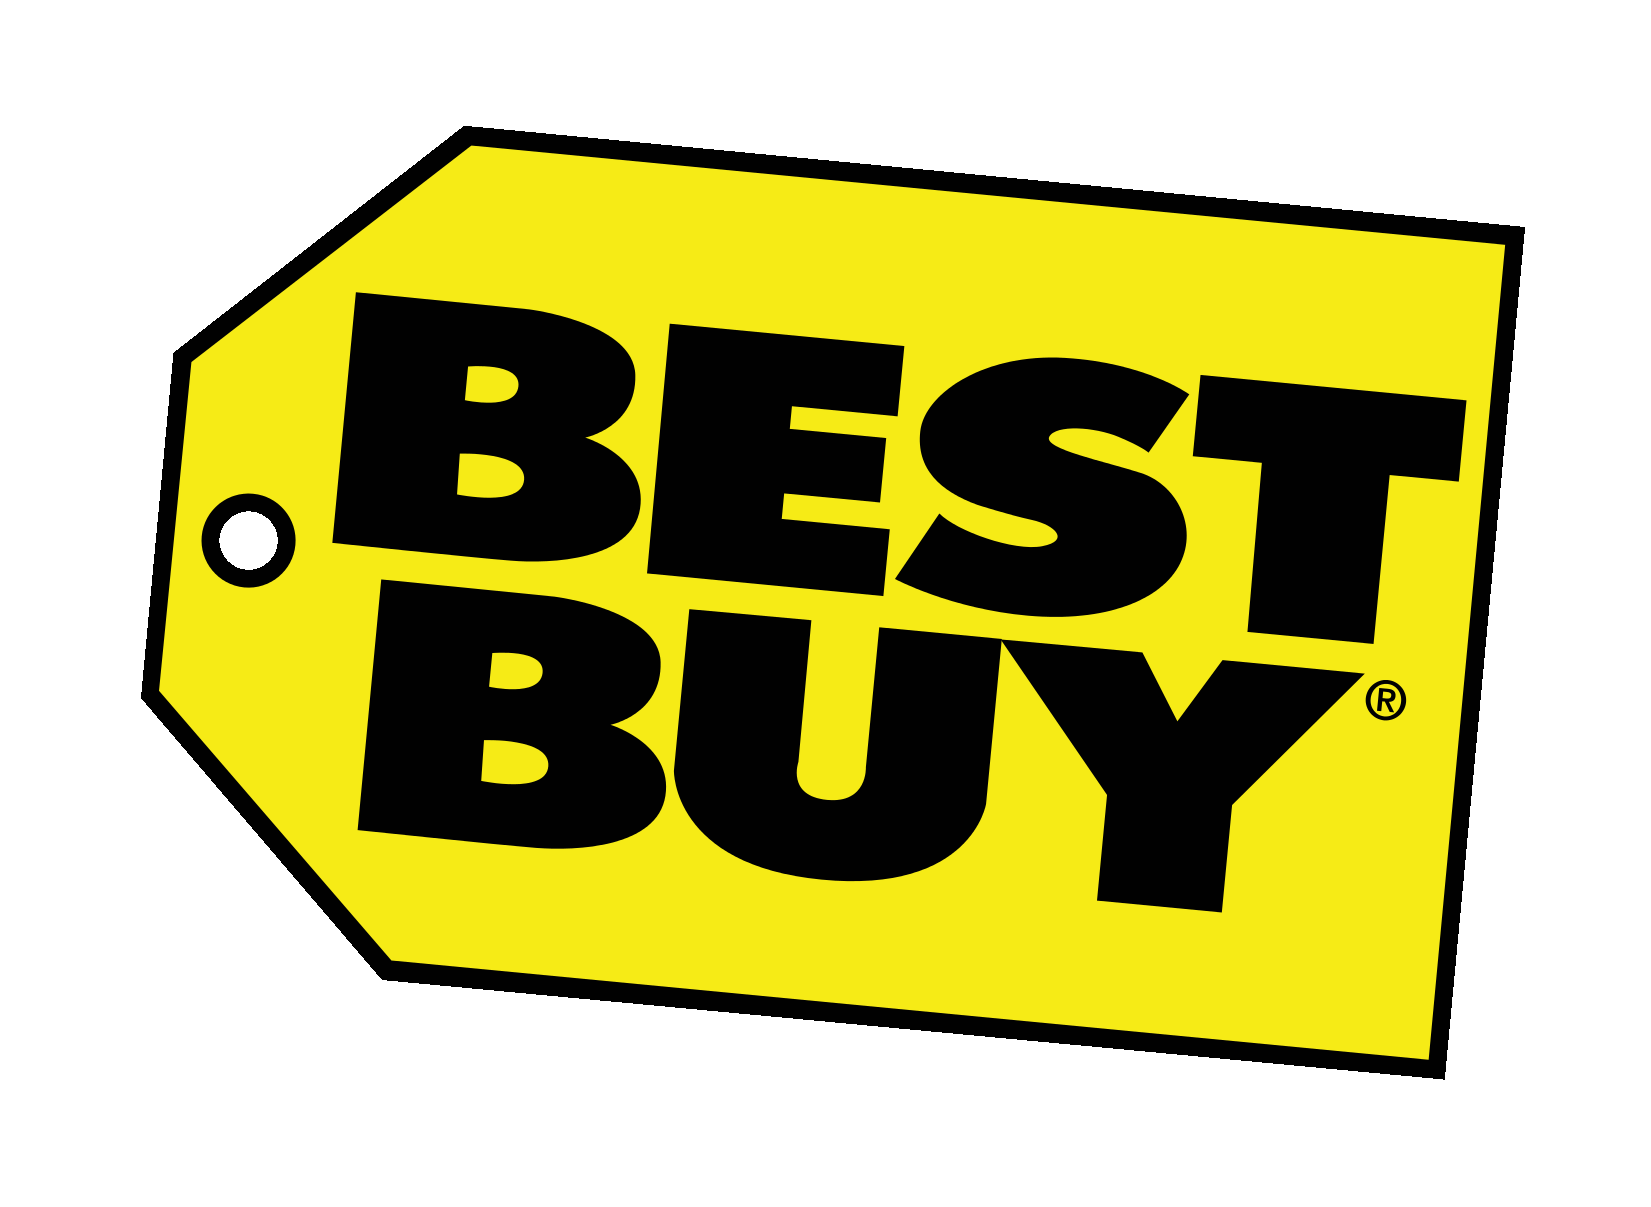 customer experience specialist advisor job in west simsbury at best buy lensa customer experience specialist advisor